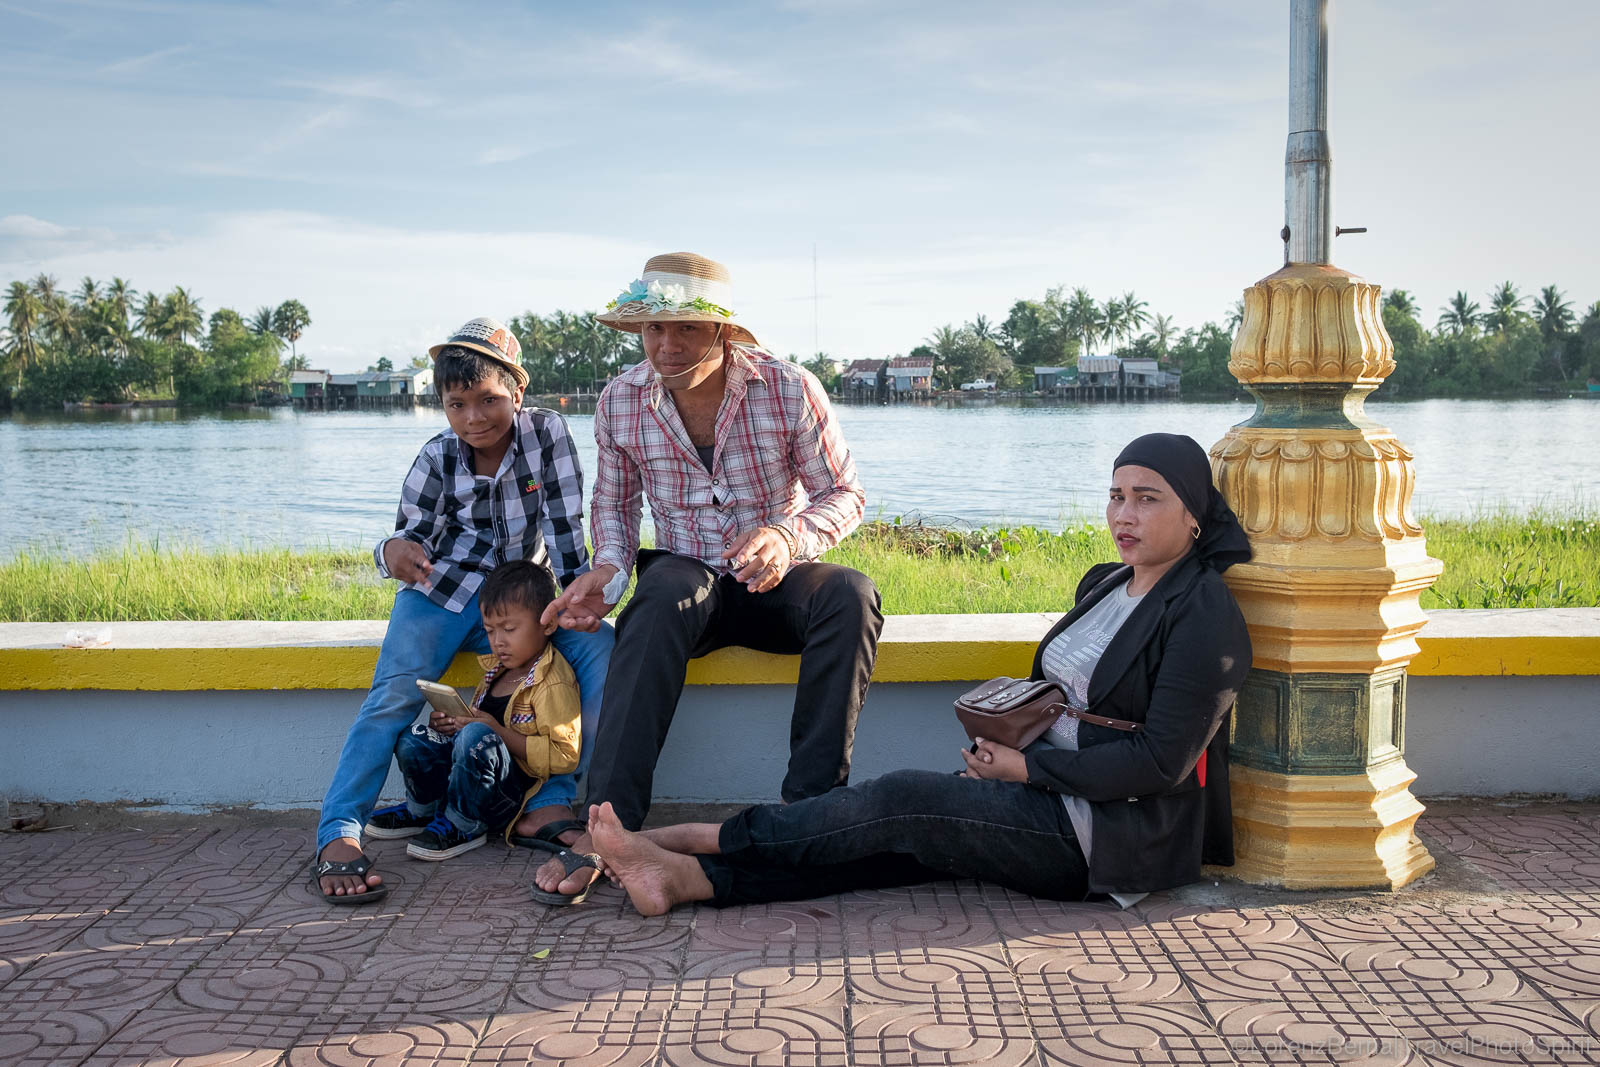 Muslim Cham family relaxing on the riverside on a late afternoon, Cambodia